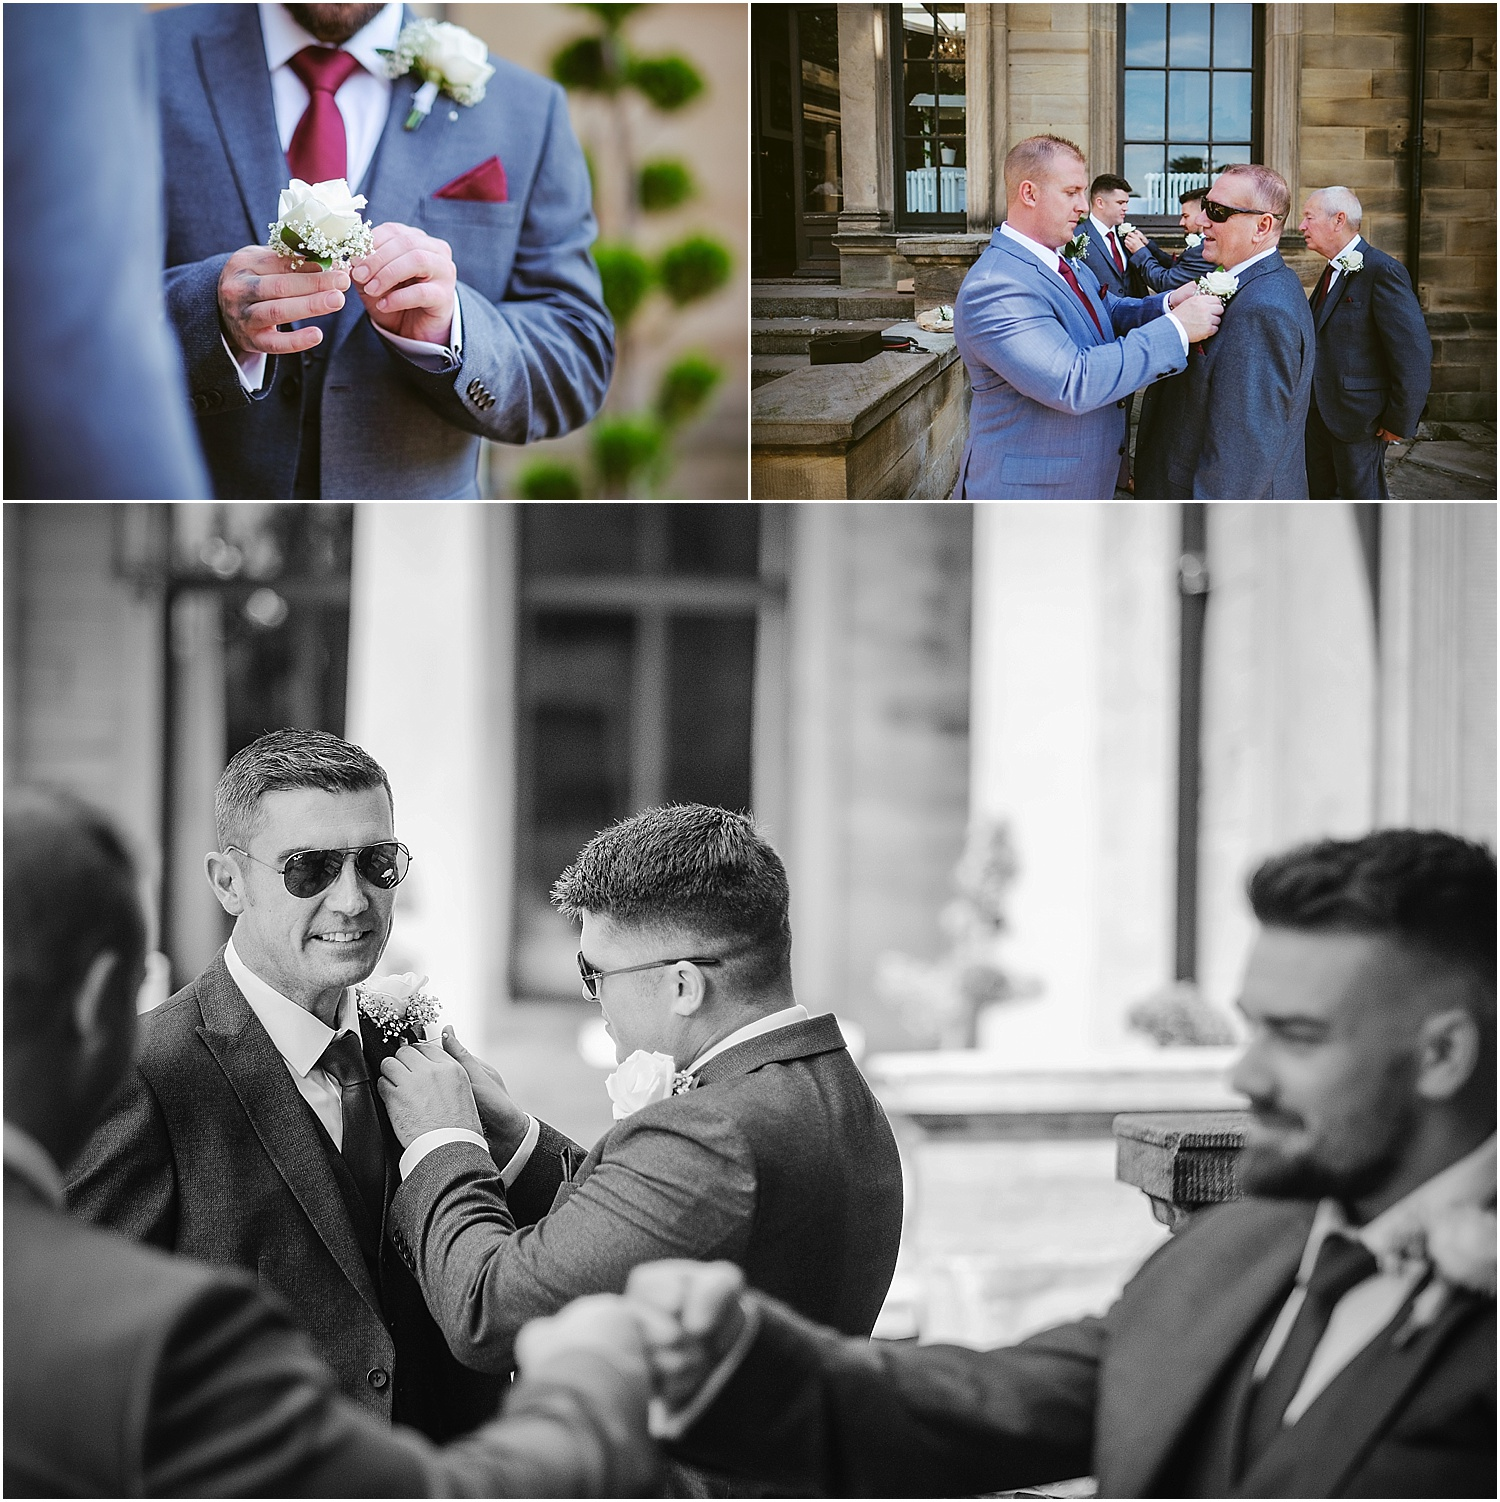 Wedding at Beamish Hall - wedding photography by www.2tonephotography.co.uk 130.jpg